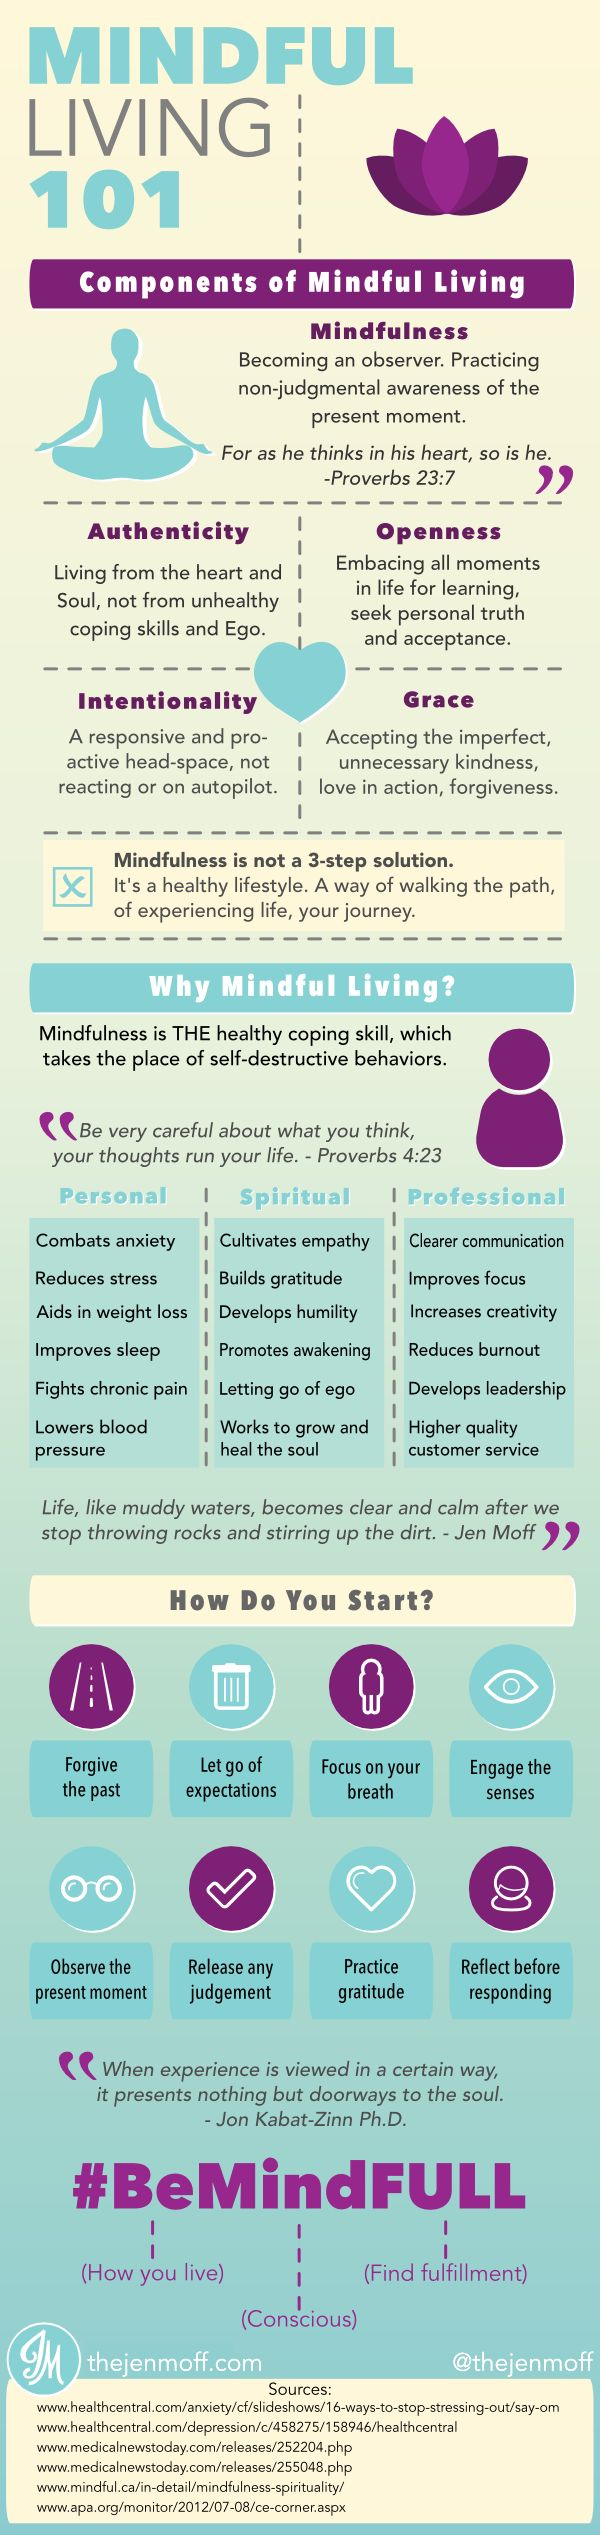 Mindful Living 101 #mindfulness #wellbeing Infographic